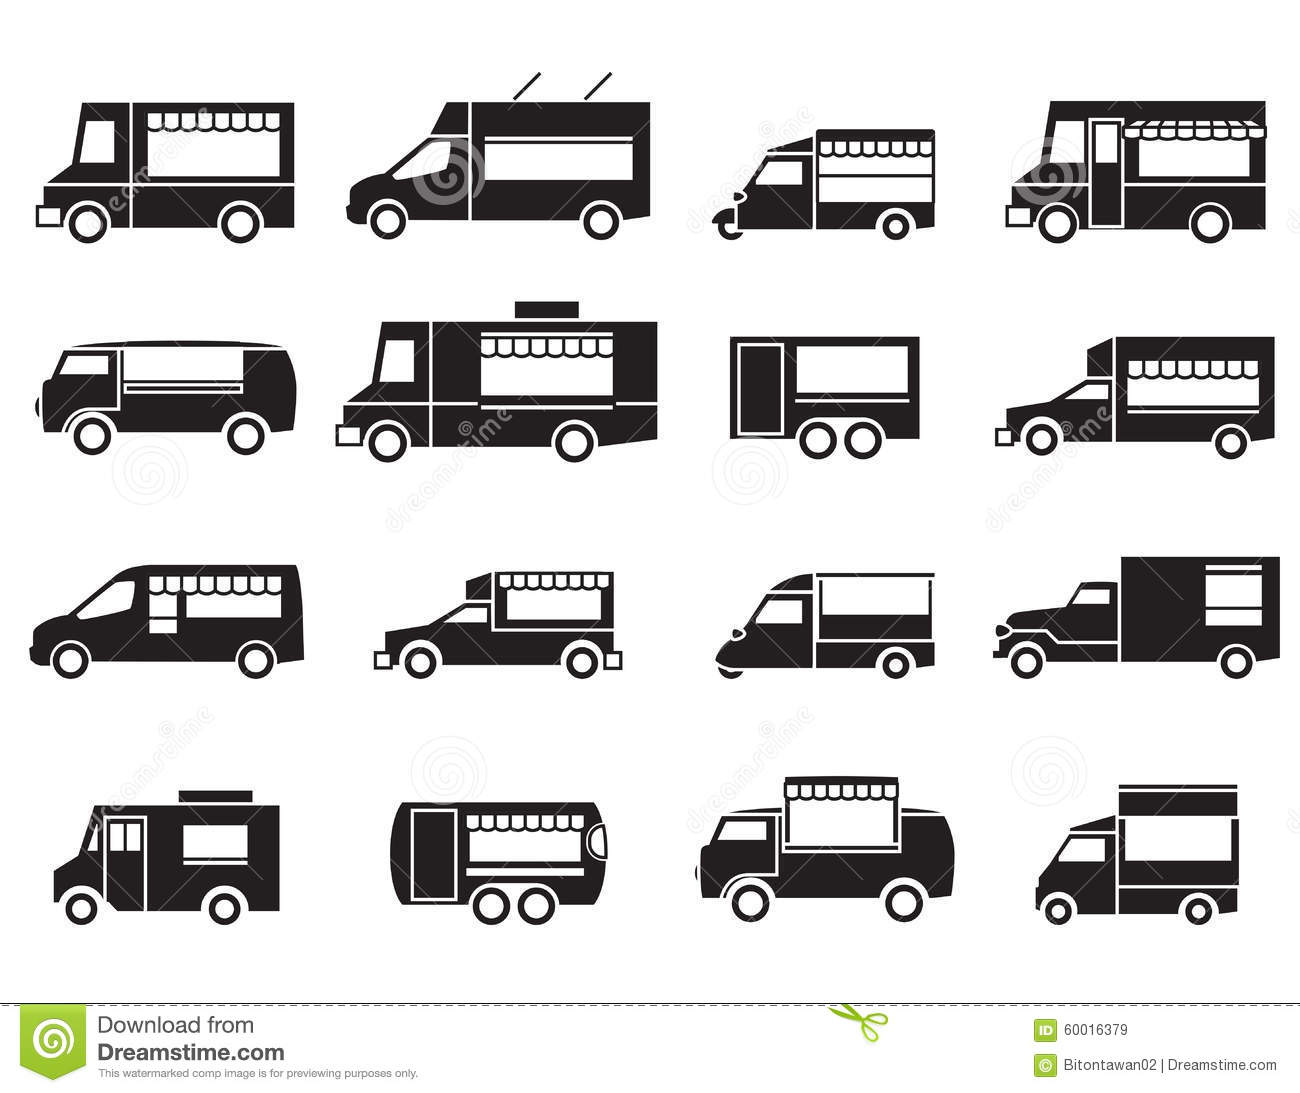 Food truck stock illustrations 4047 food truck stock food truck icon set royalty free stock images pronofoot35fo Images